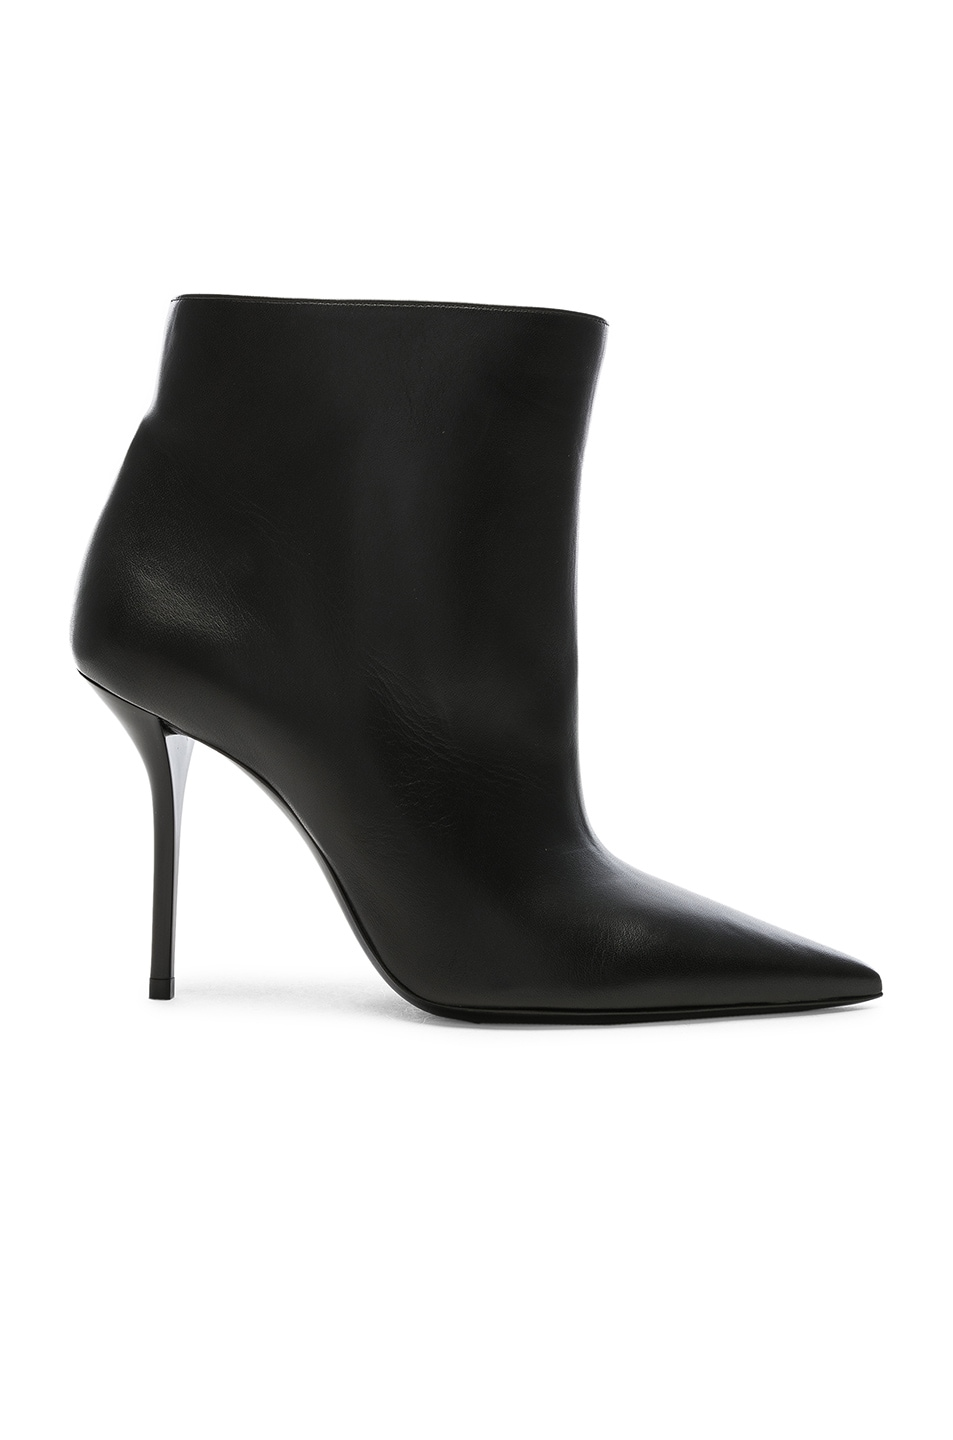 Image 1 of Saint Laurent Leather Pierre Stiletto Ankle Boots in Black